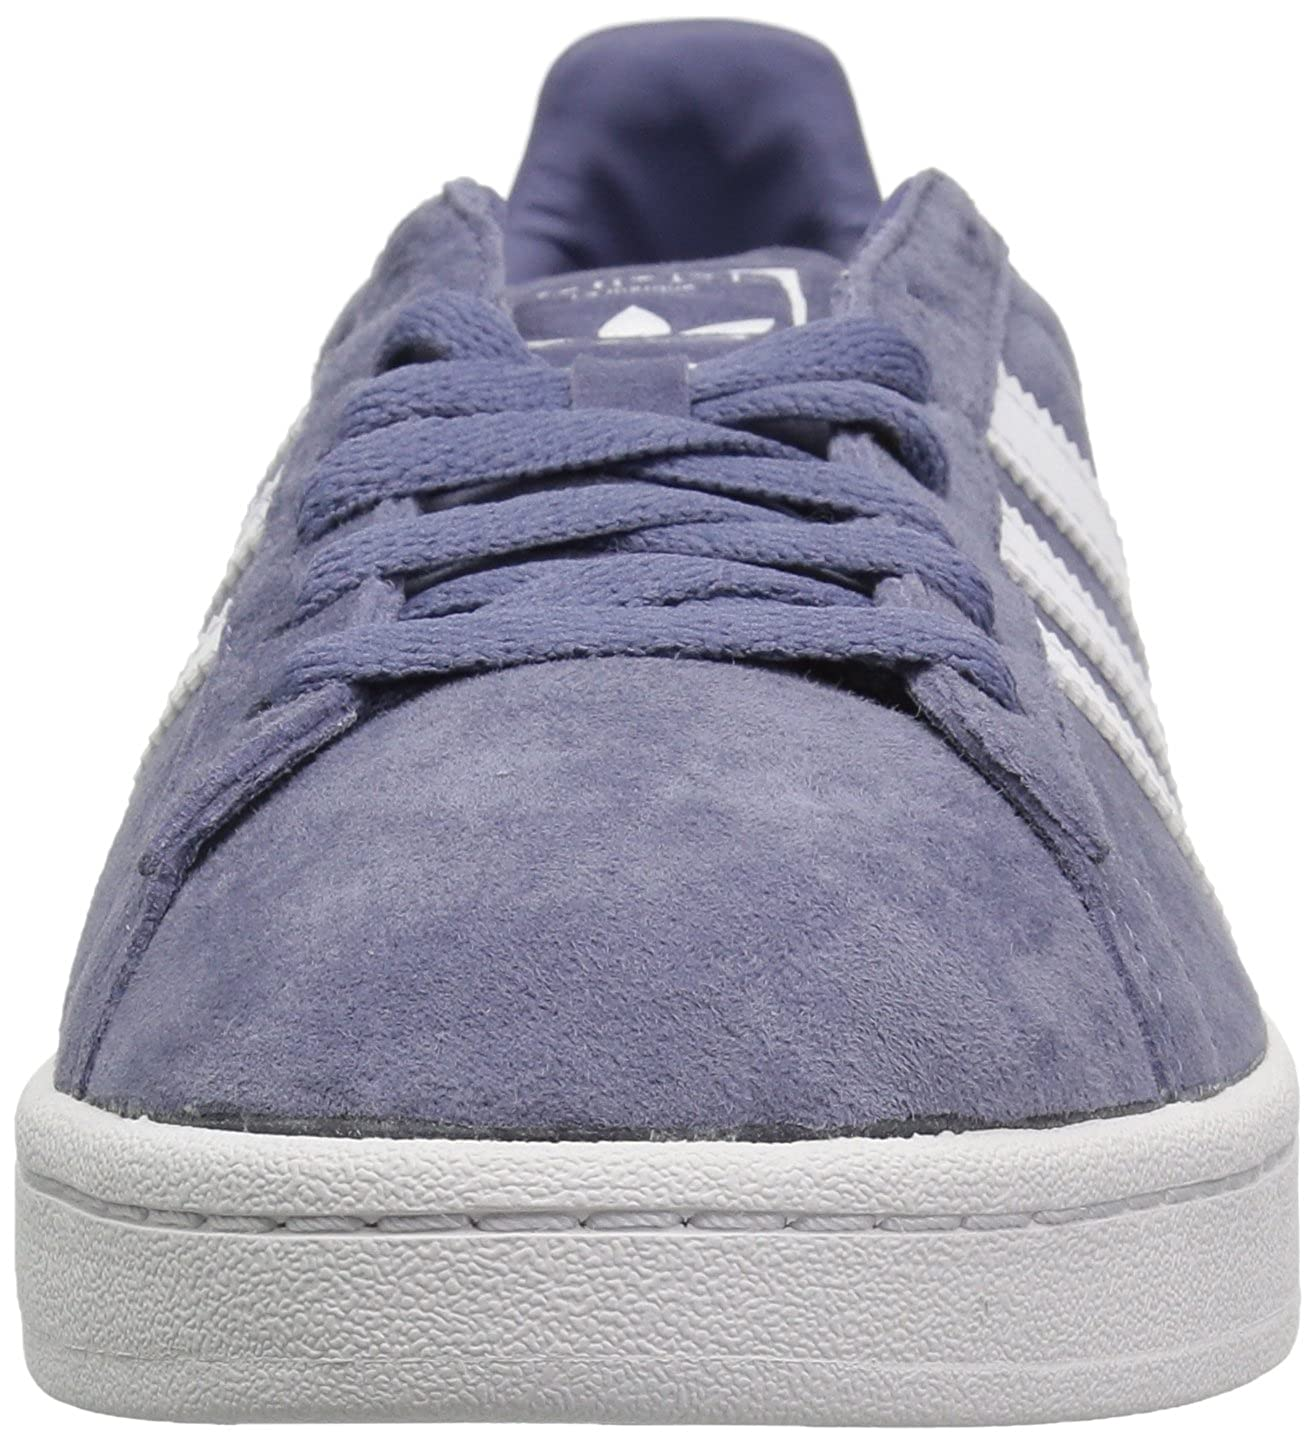 Adidas-Campus-Men-039-s-Casual-Fashion-Sneakers-Retro-Athletic-Shoes thumbnail 50